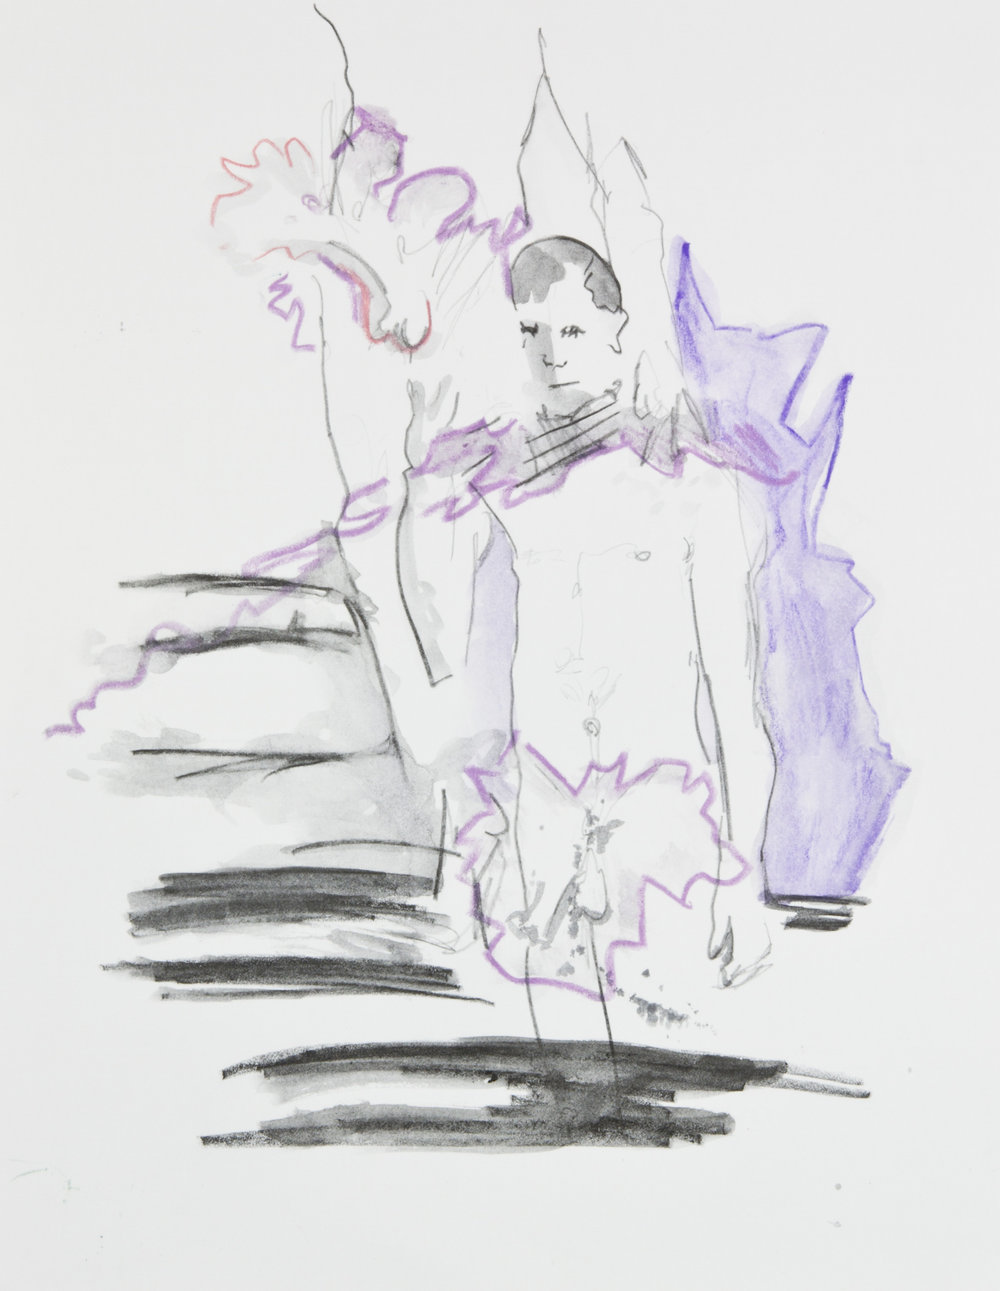 Another Ectoplasmic Event, 2013, graphite, crayon and watercolor pencil on paper, 11x14 inches